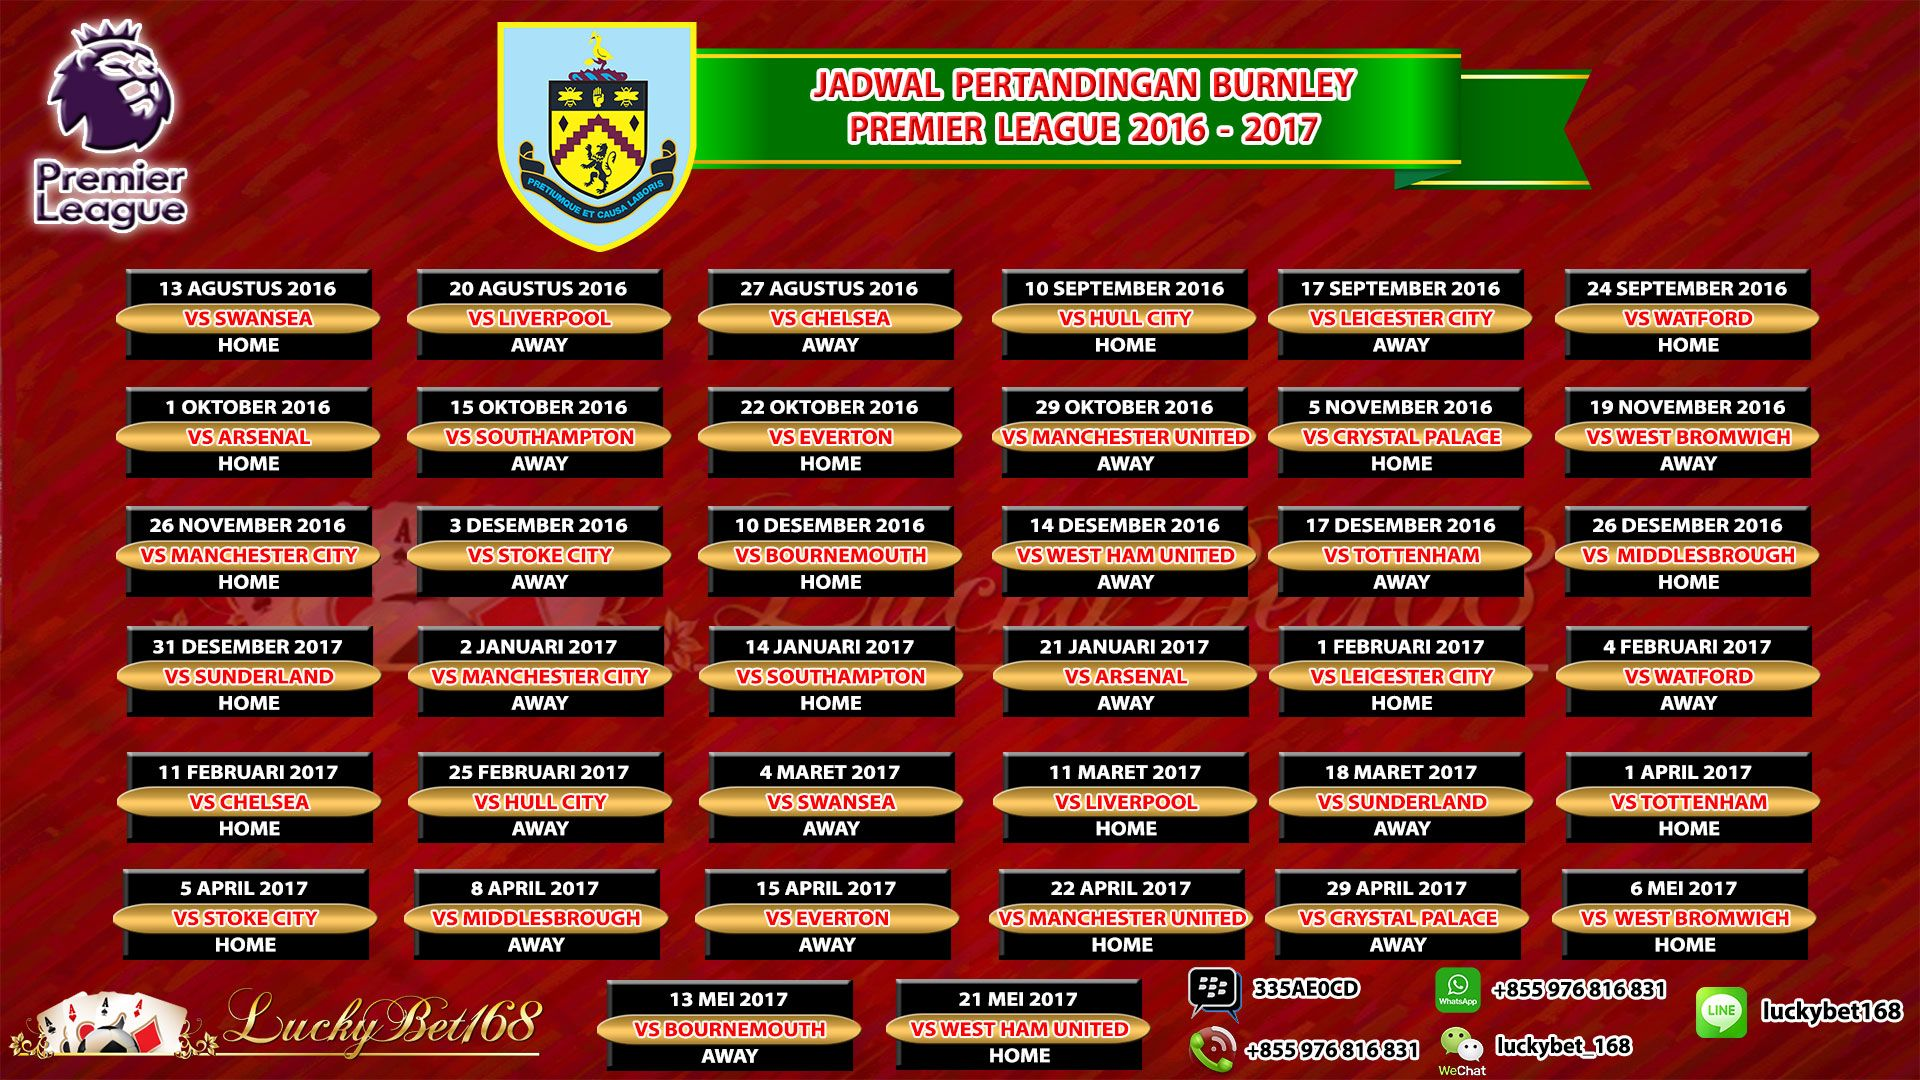 jadwal-burnley-2017.jpg (1920×1080)